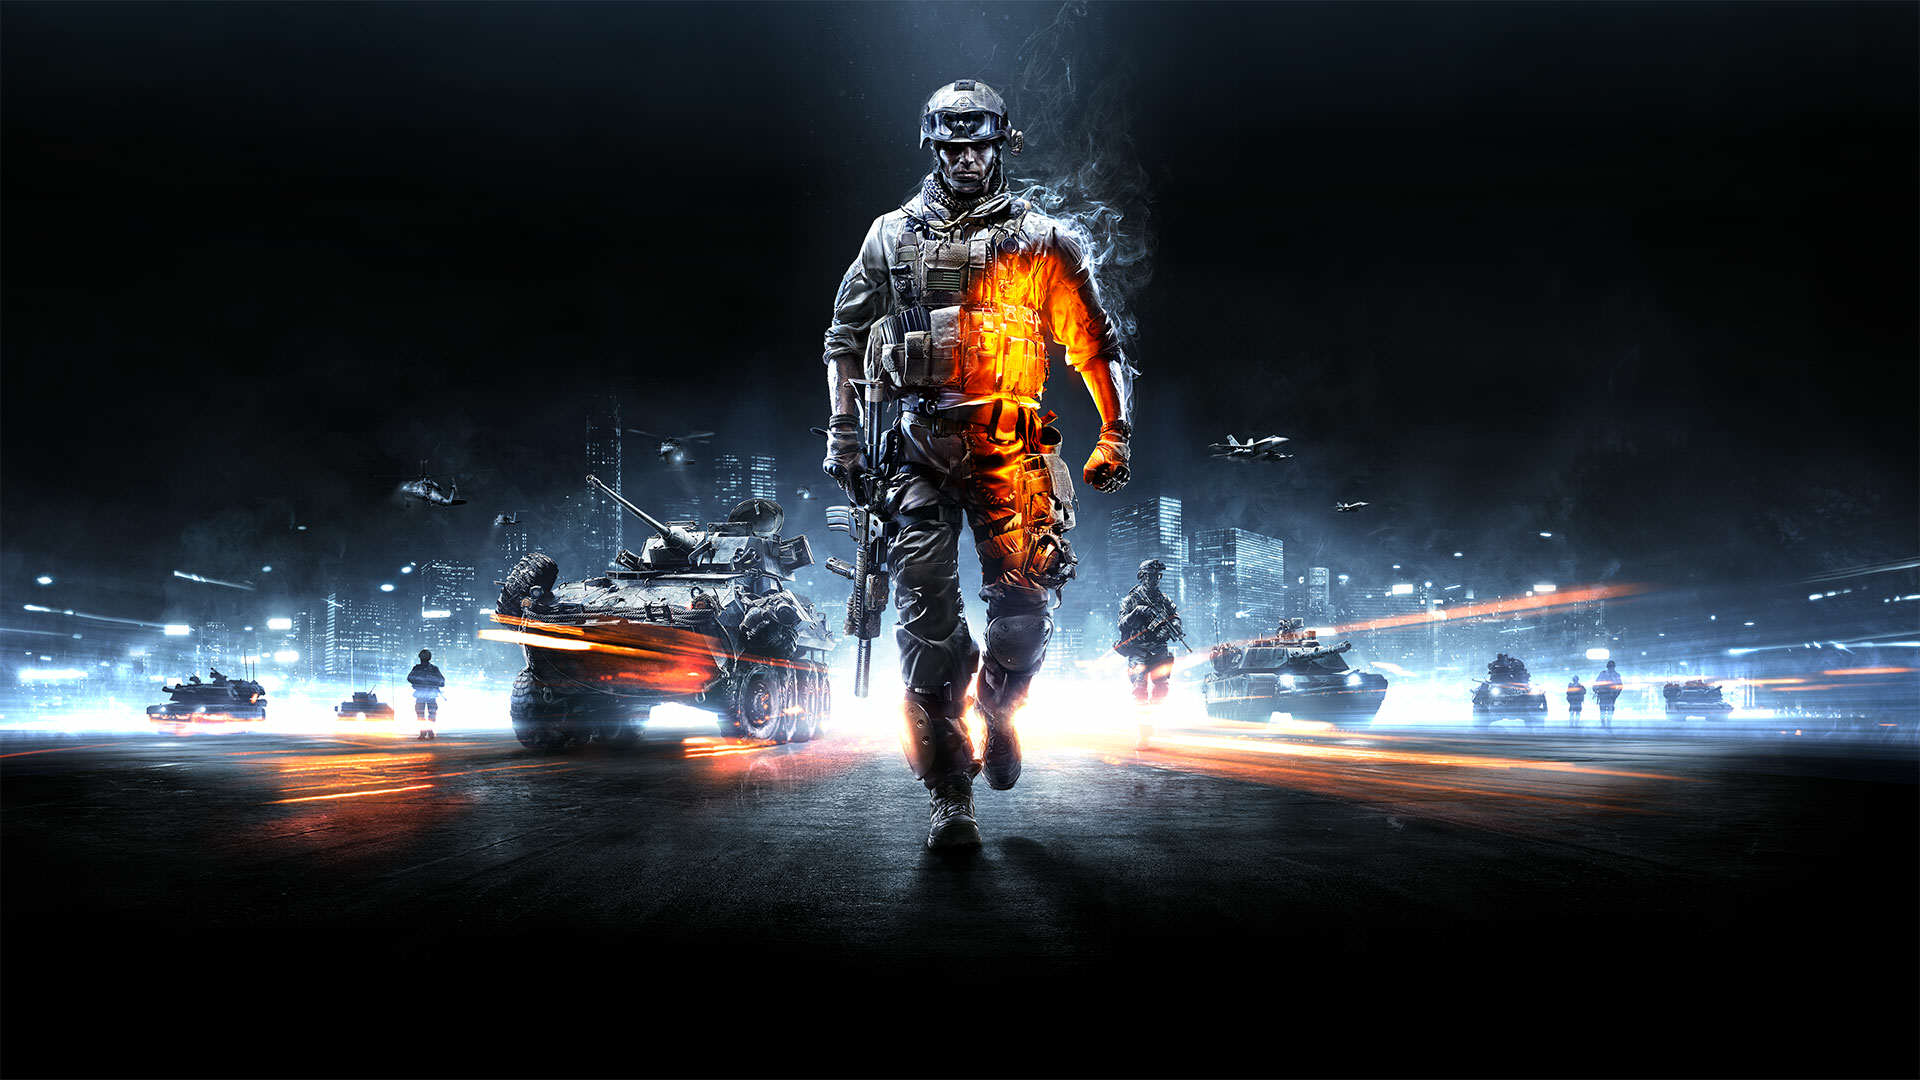 Battlefield TV Show In The Works, Heres What We Know bf3bg 1